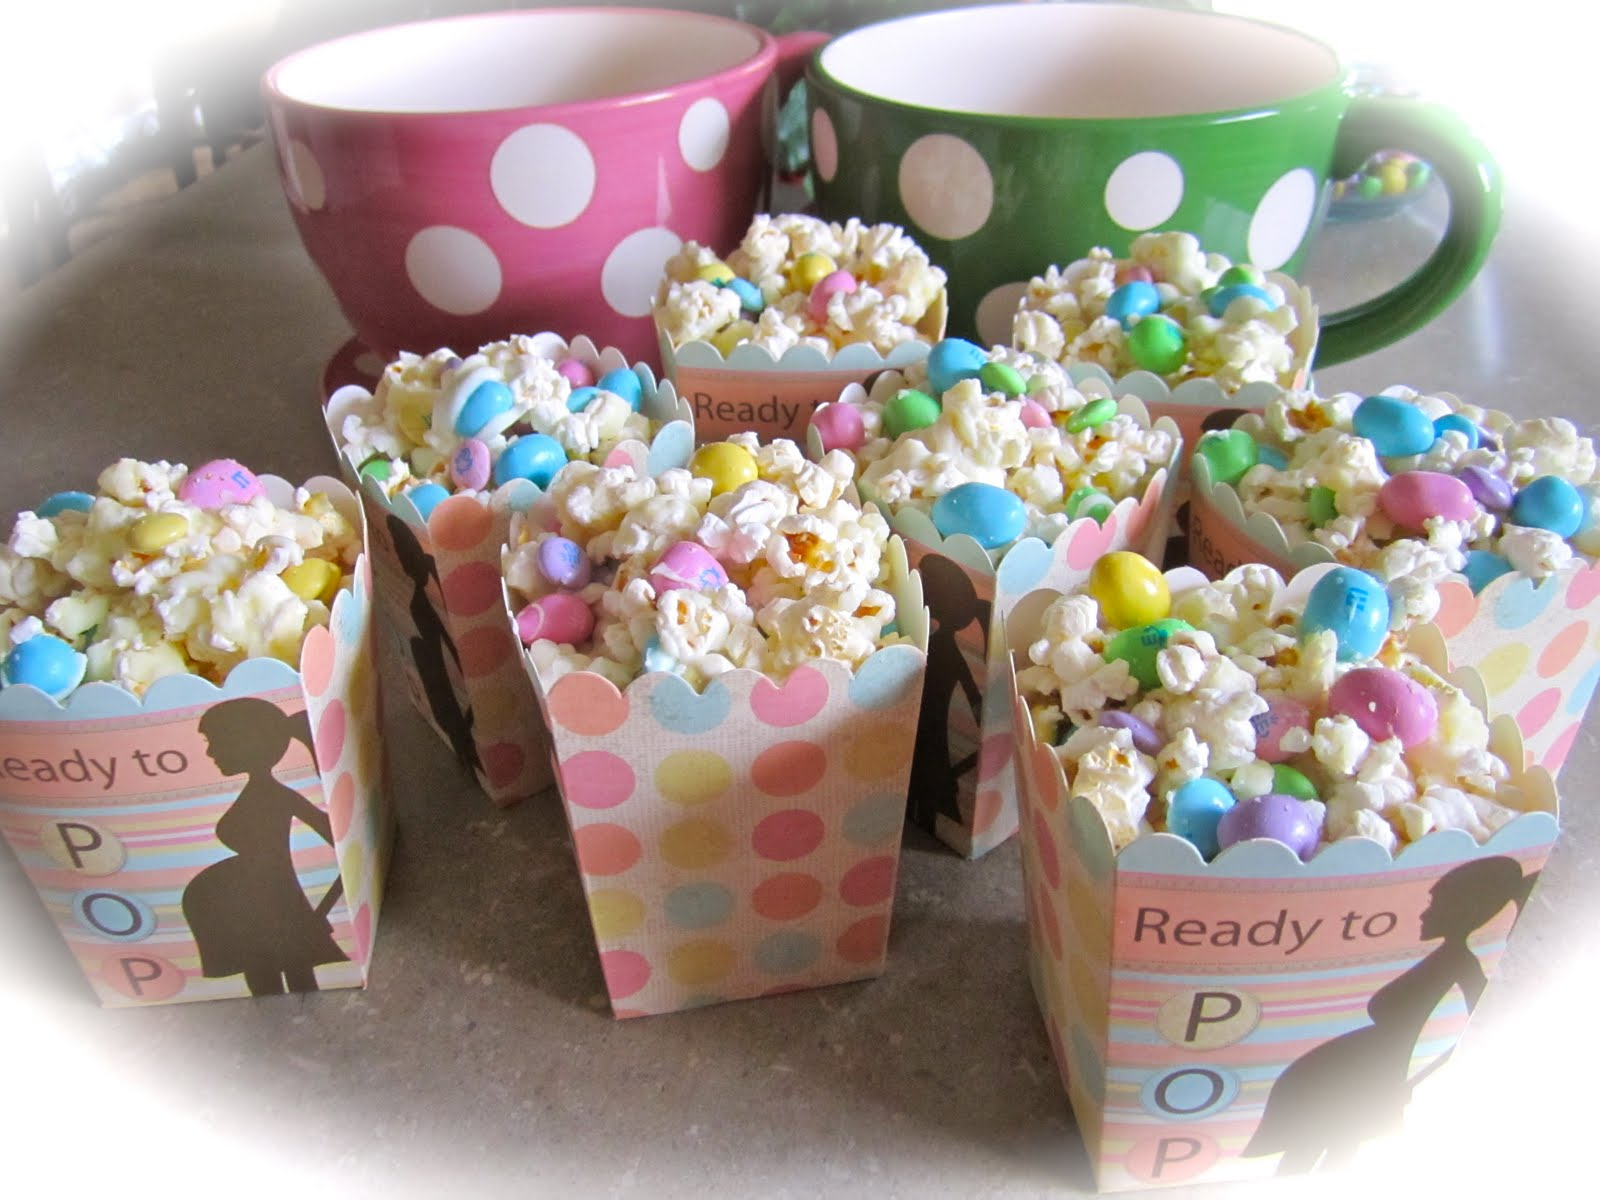 """Back Pocket Creations: """"She is ready to Pop"""" Popcorn"""